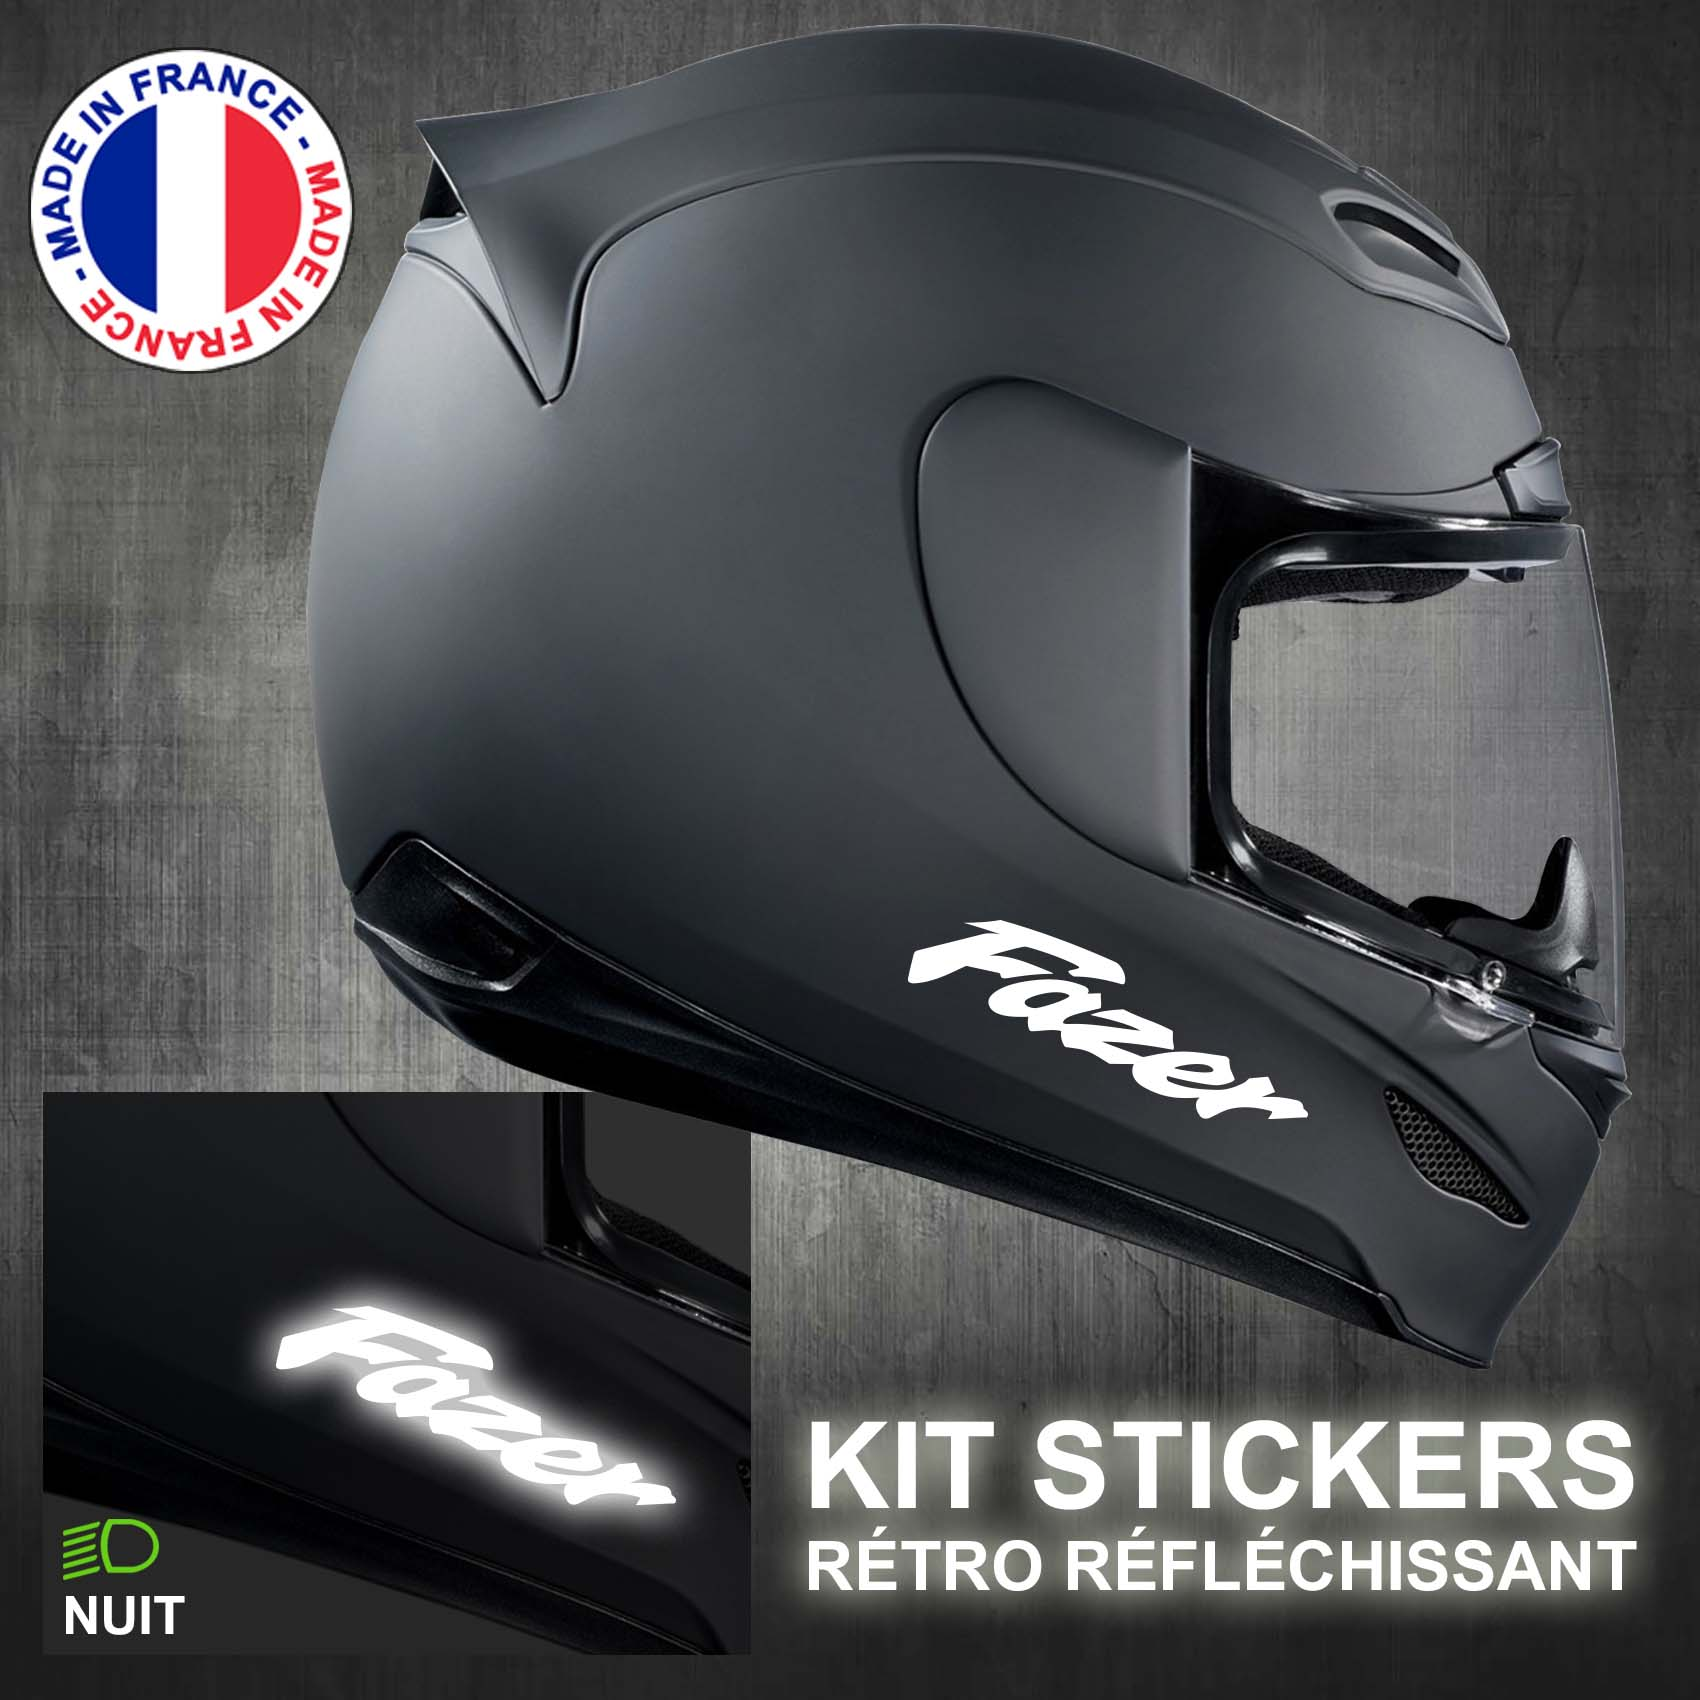 stickers-casque-moto-fazer-ref1-retro-reflechissant-autocollant-noir-moto-velo-tuning-racing-route-sticker-casques-adhesif-scooter-nuit-securite-decals-personnalise-personnalisable-min